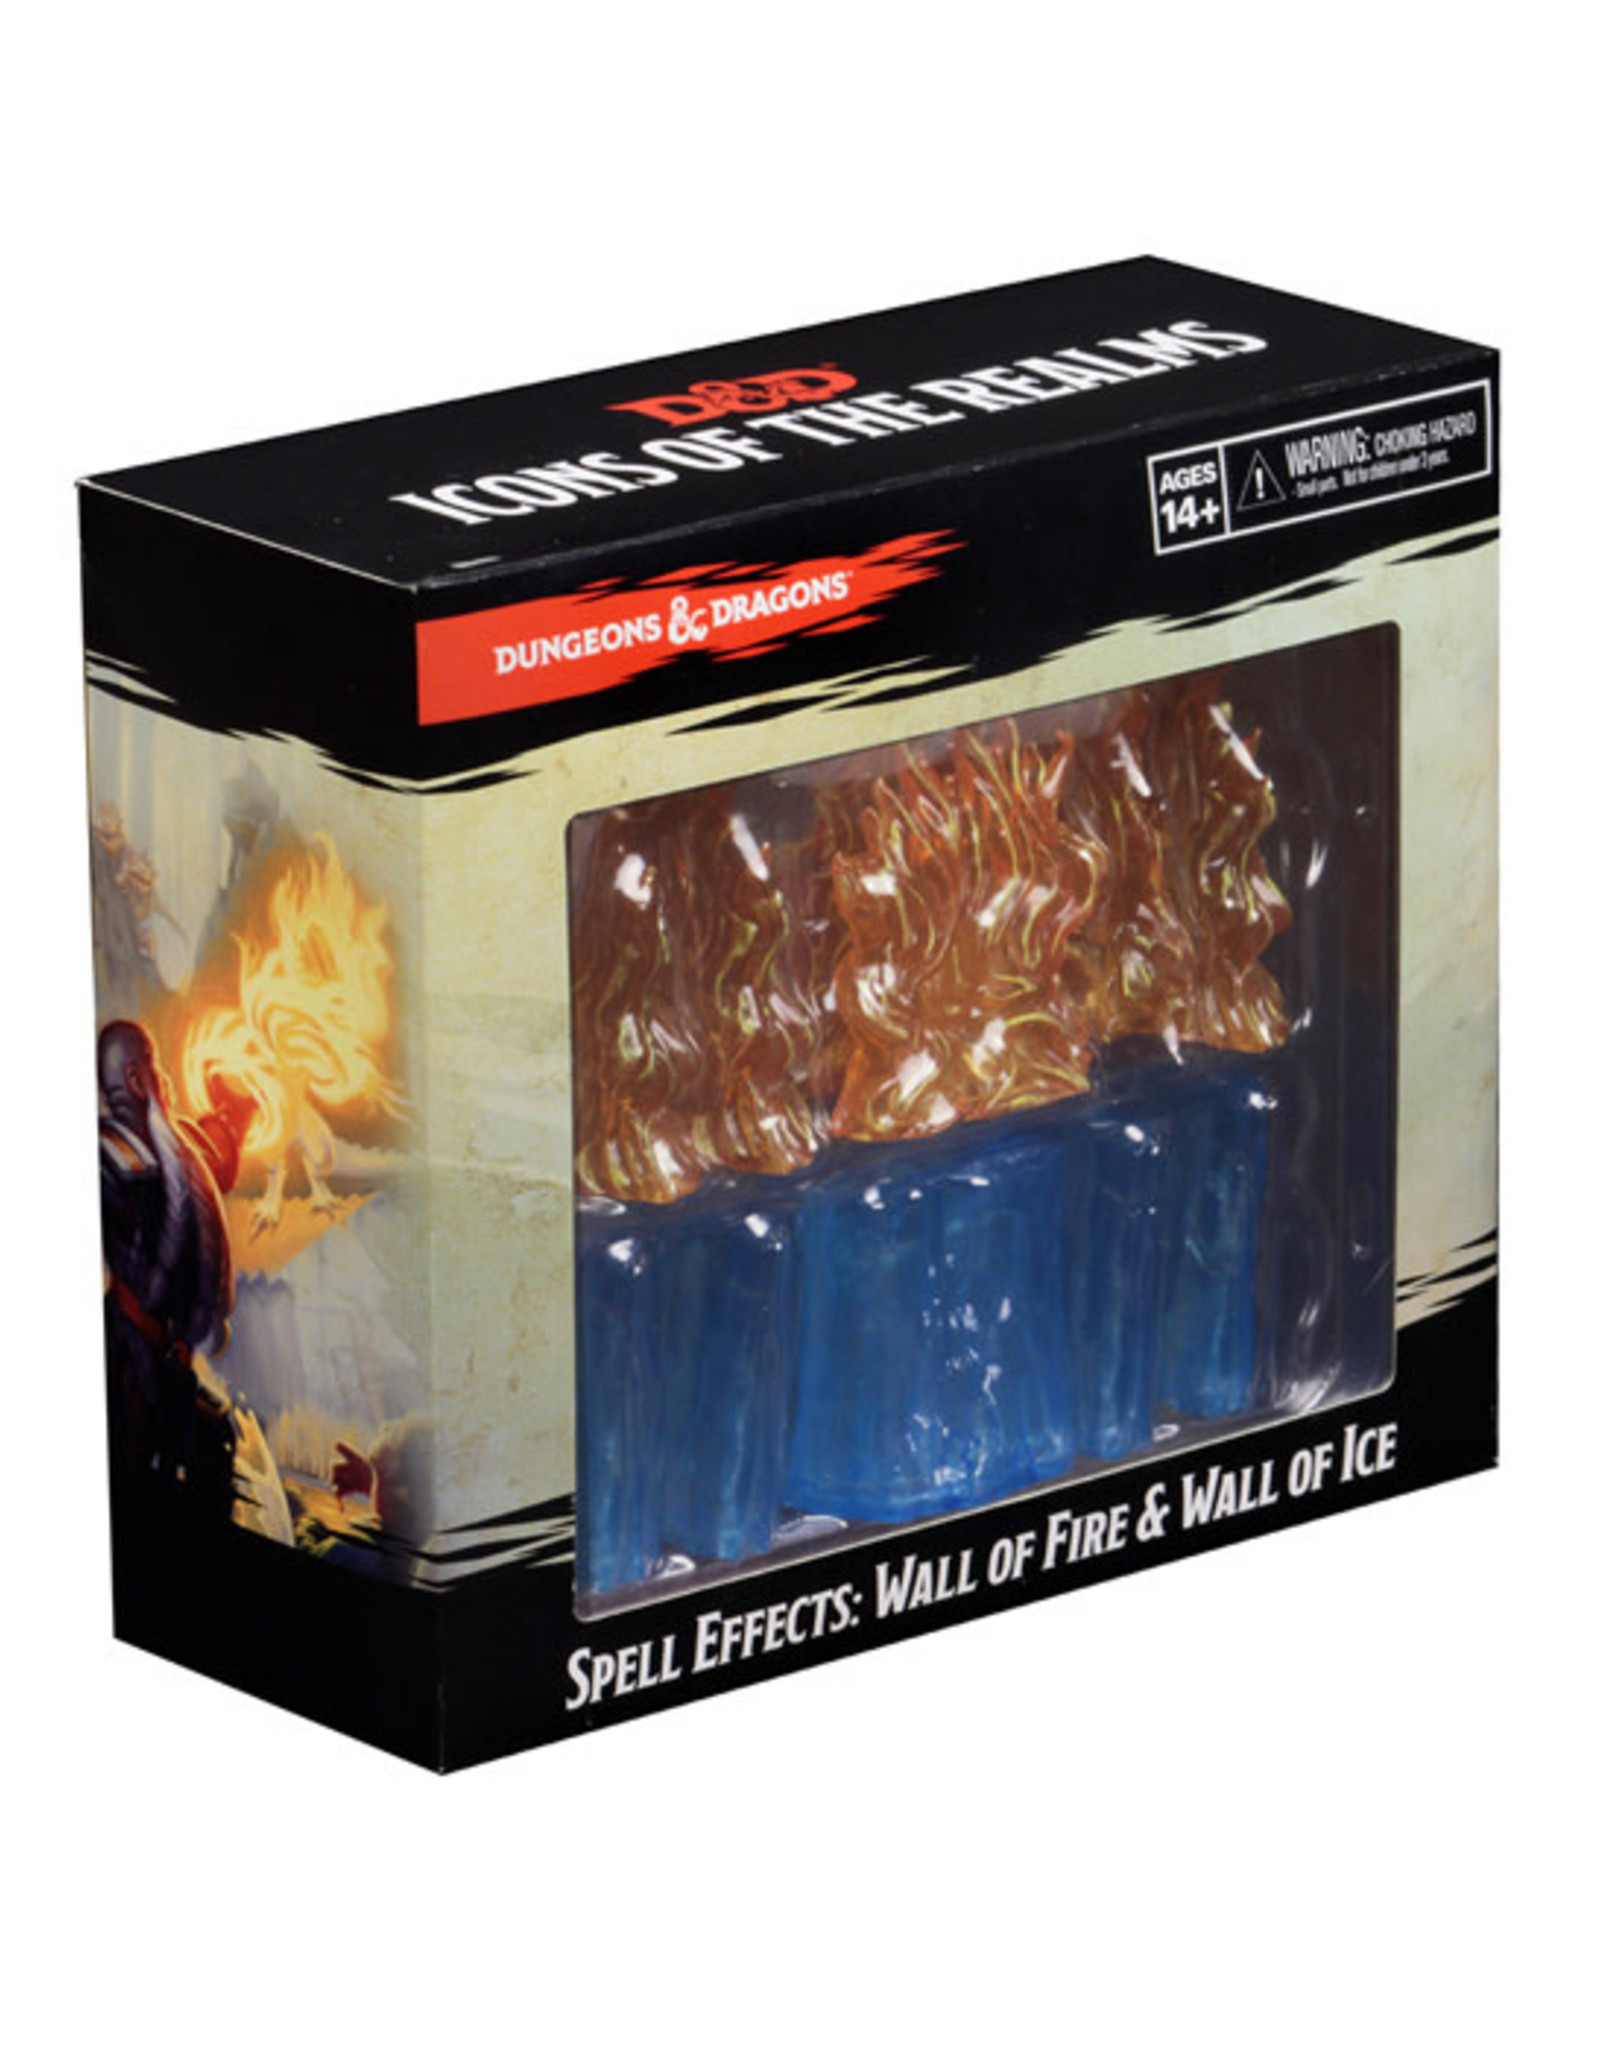 Dungeons & Dragons Dungeons & Dragons: Spell Effects - Wall of Fire & Wall of Ice